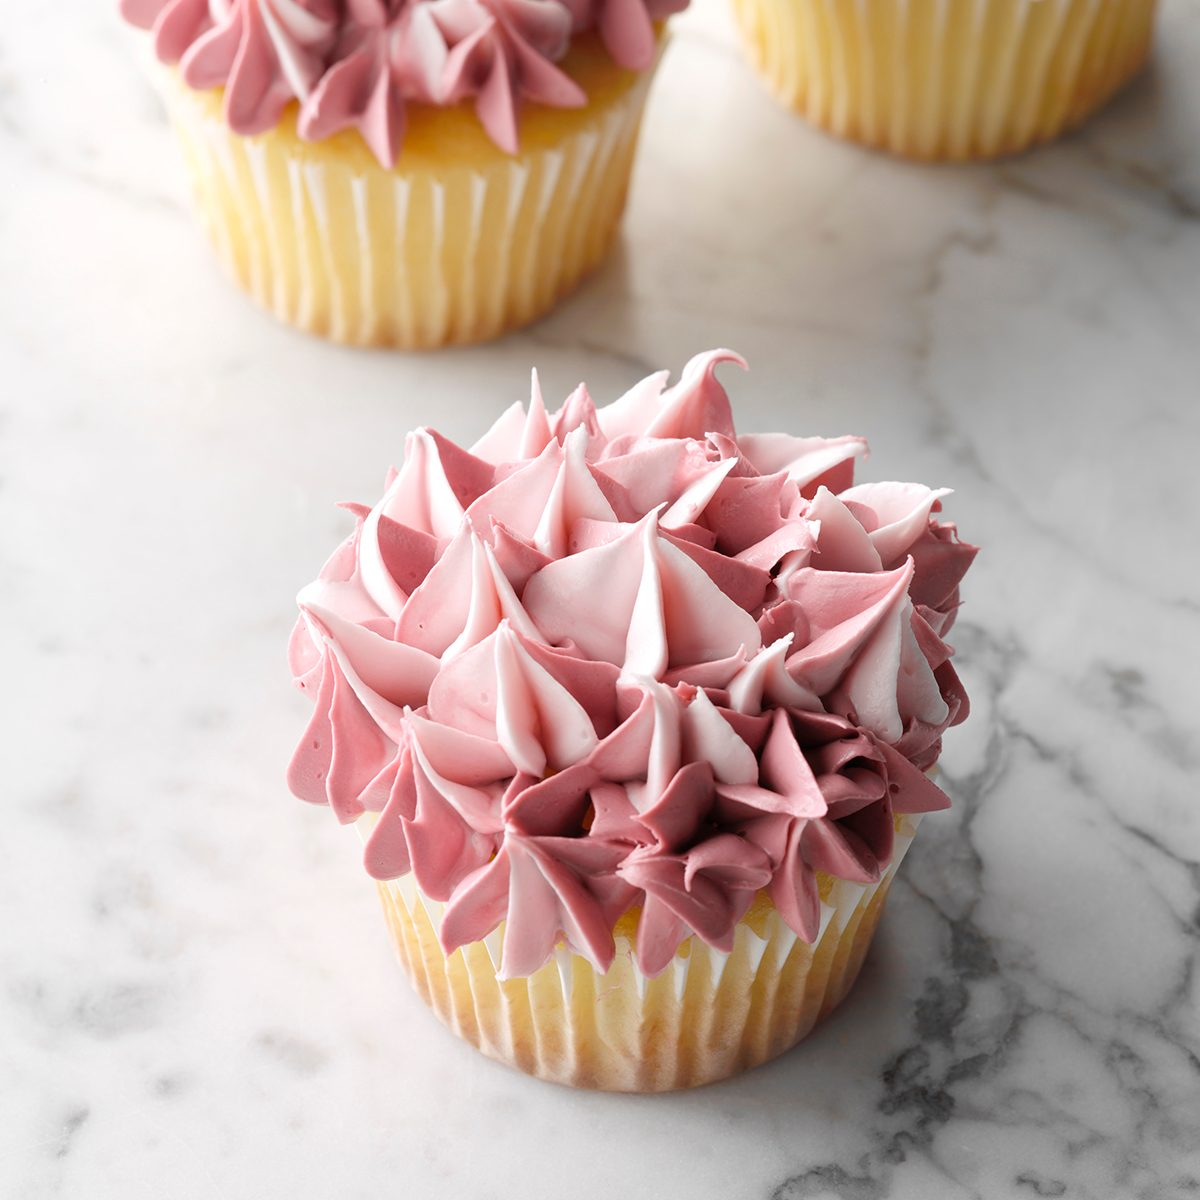 11 Easy Cupcake Decorating Ideas Taste Of Home